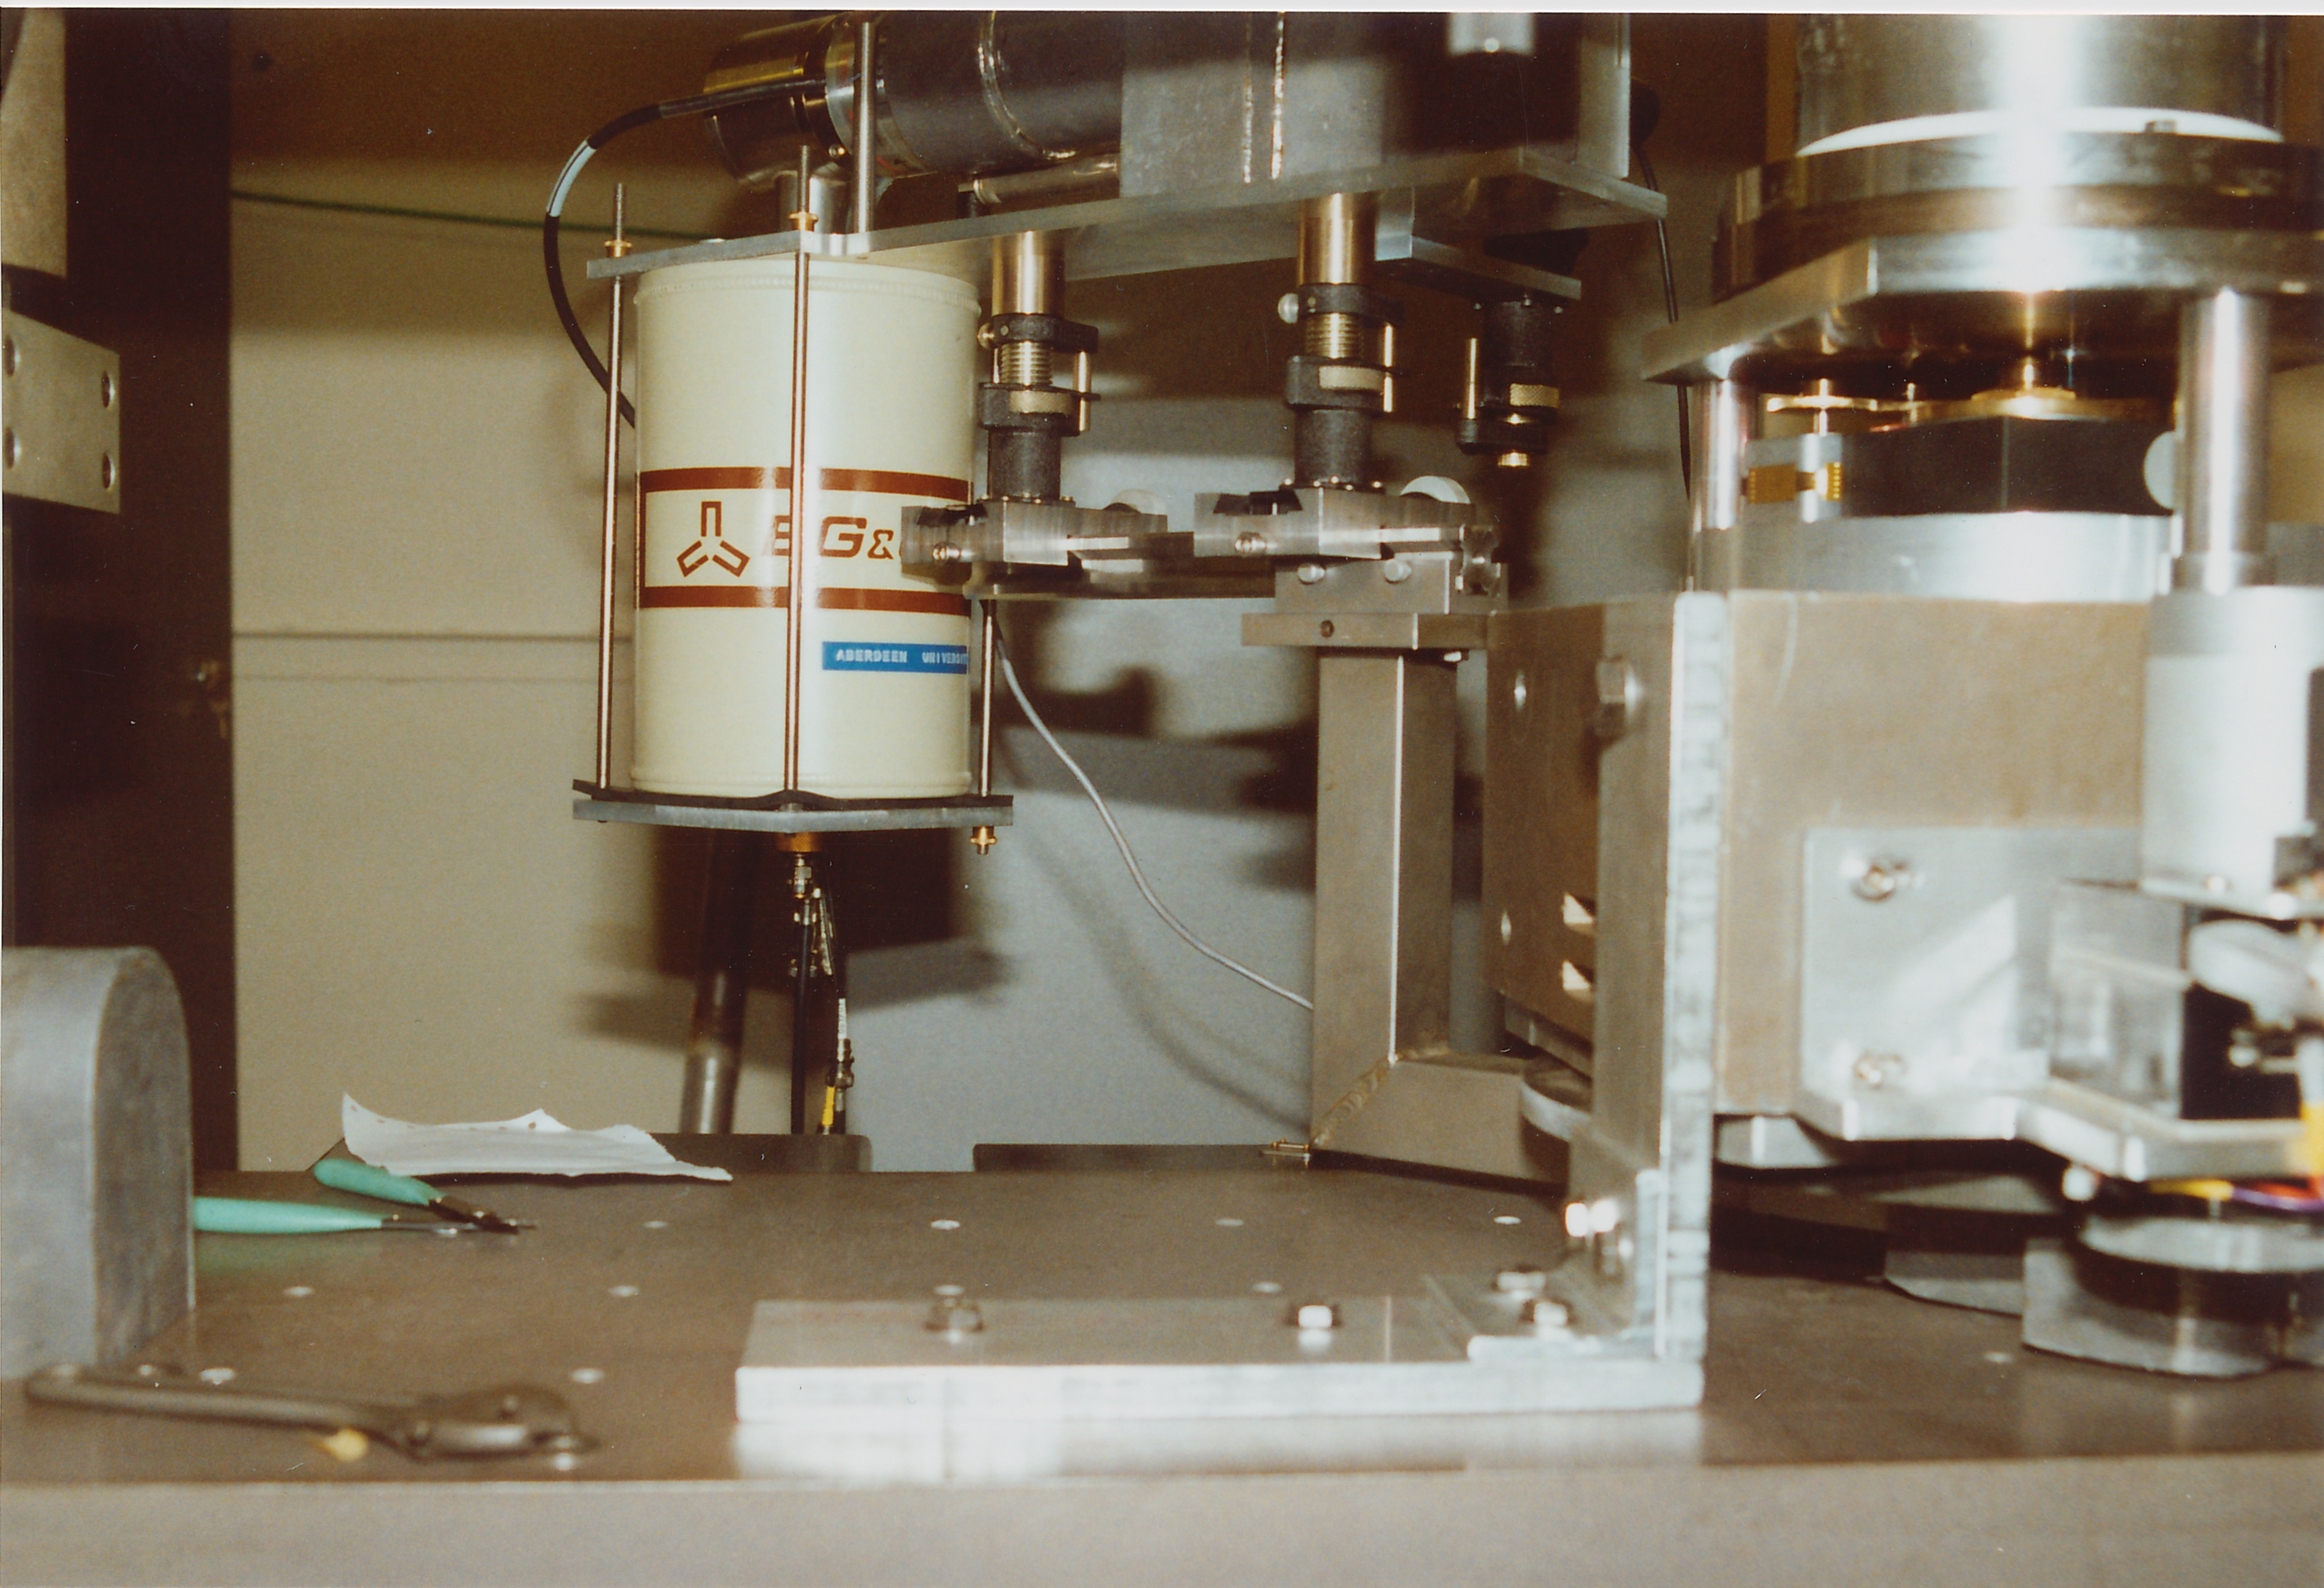 sc0031.jpg - The detector adjustable platform and liquid nitrogen dewar